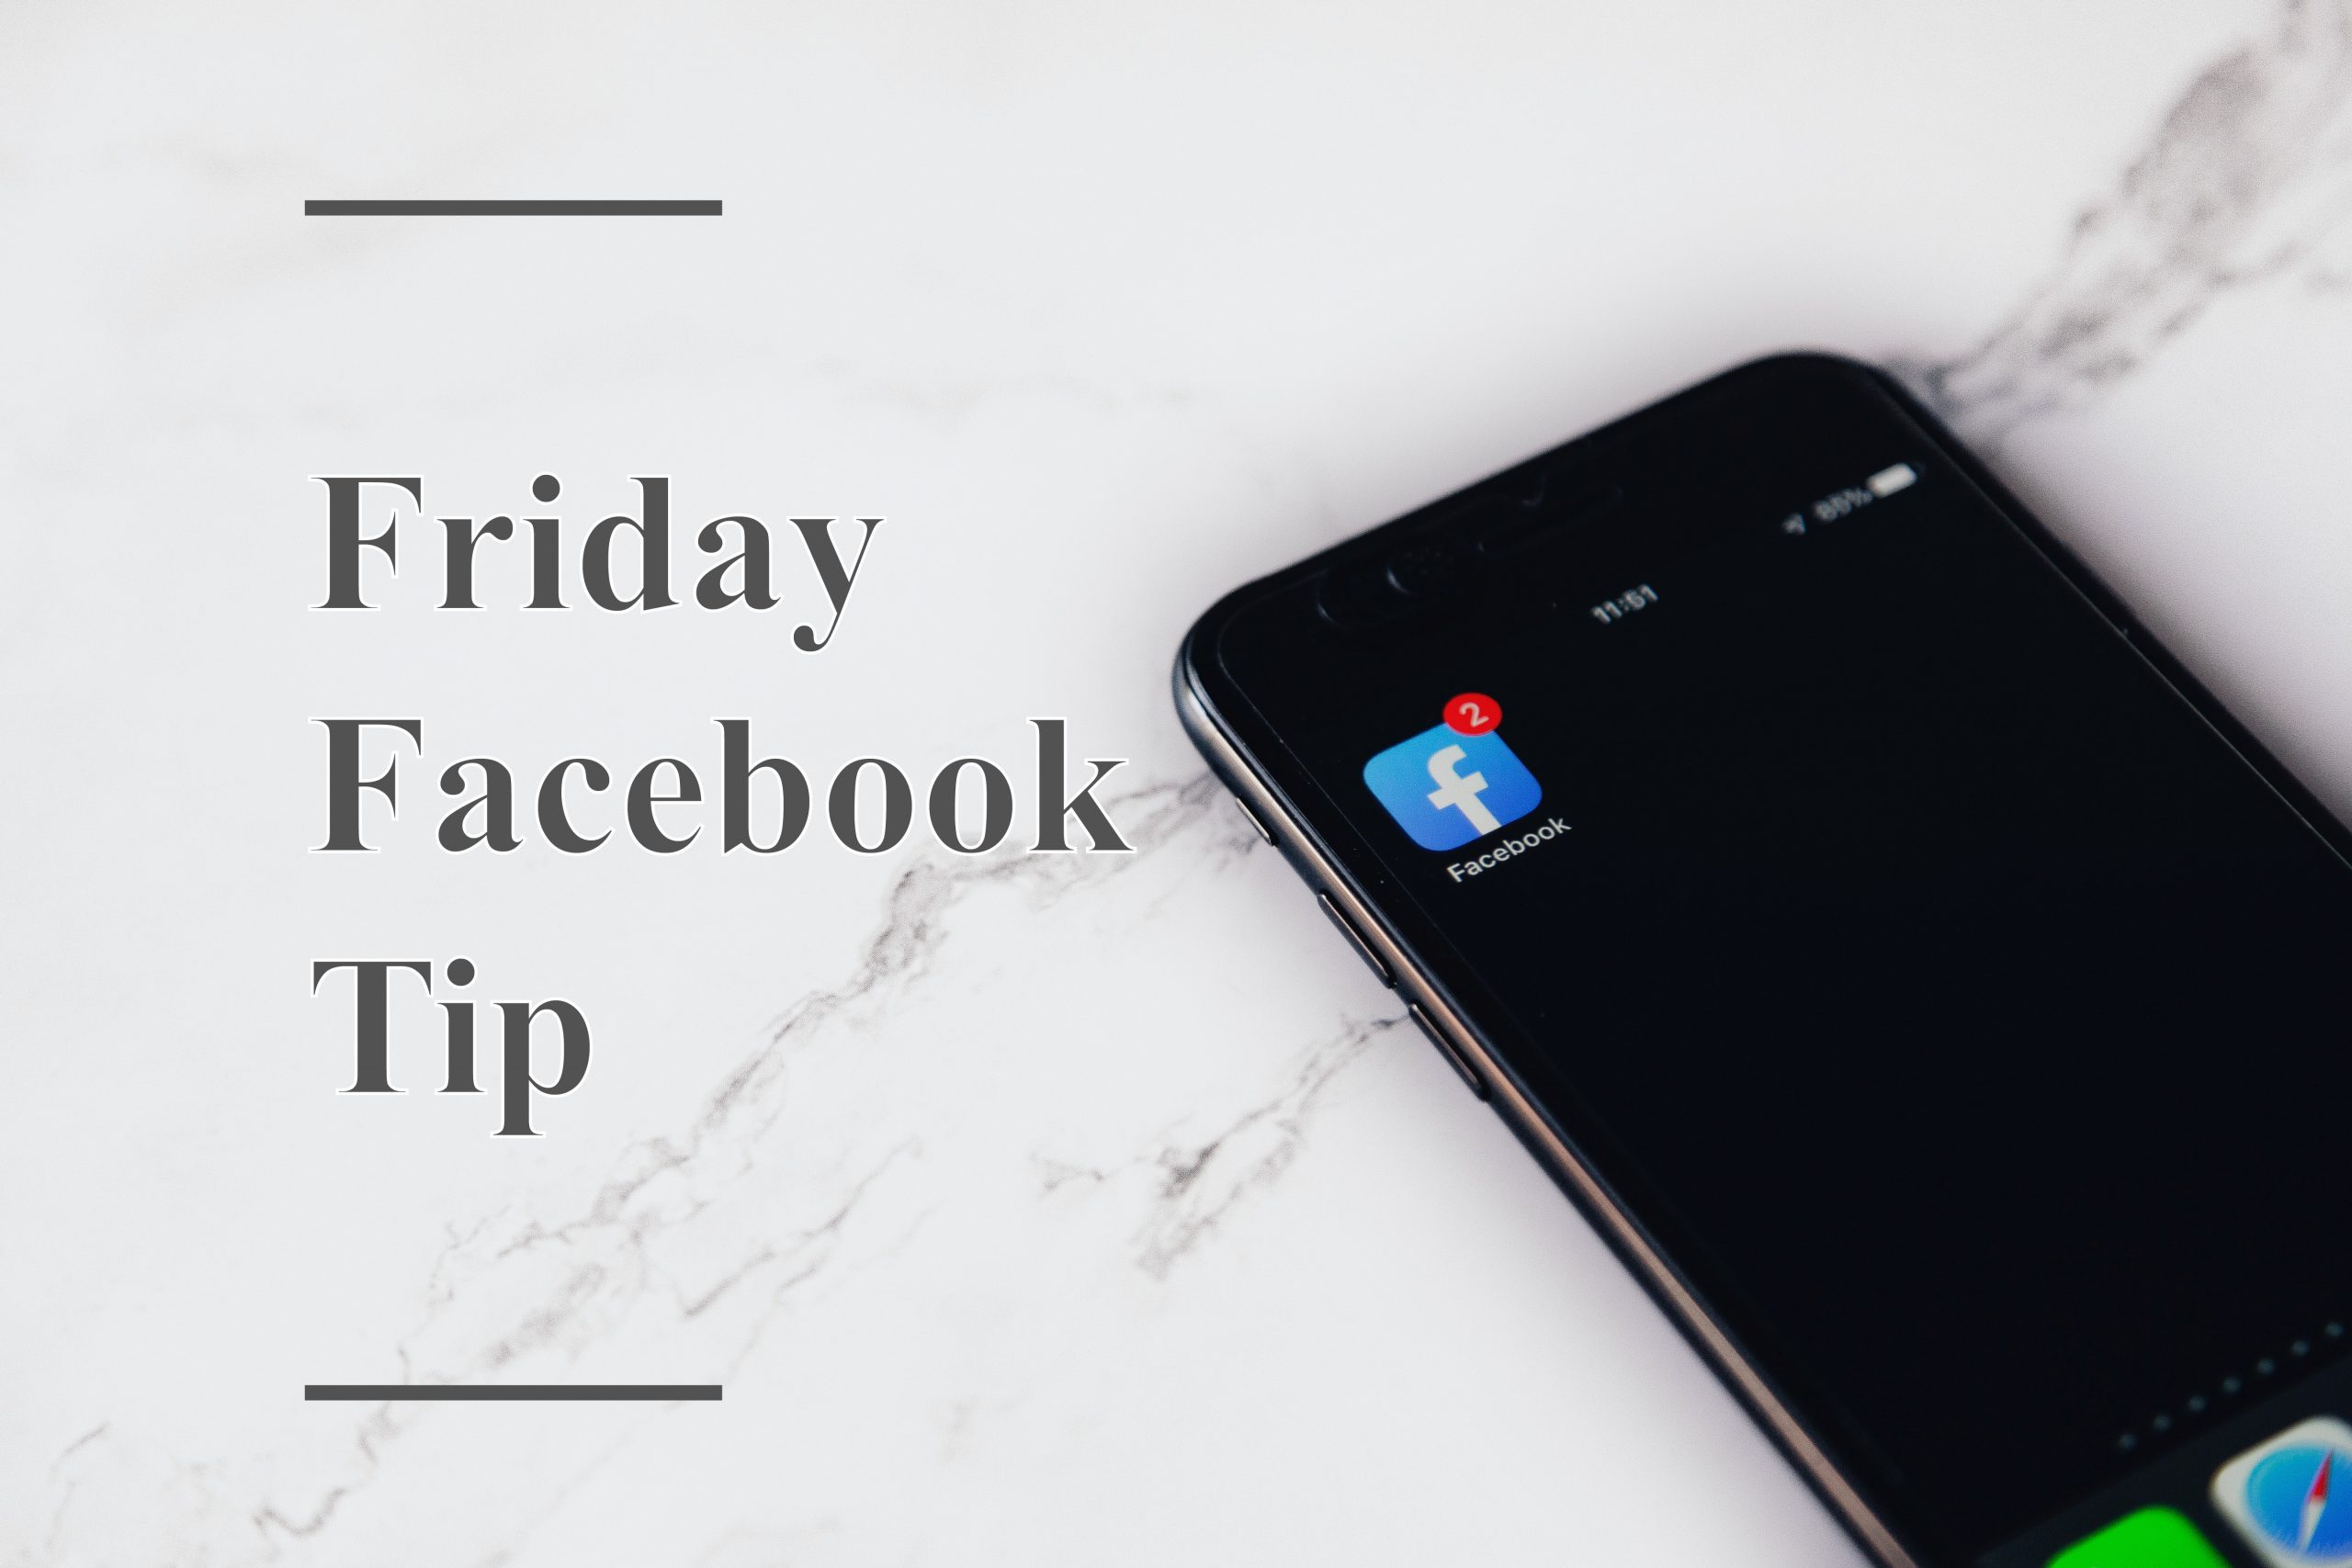 Facebook Feature Tip Friday!